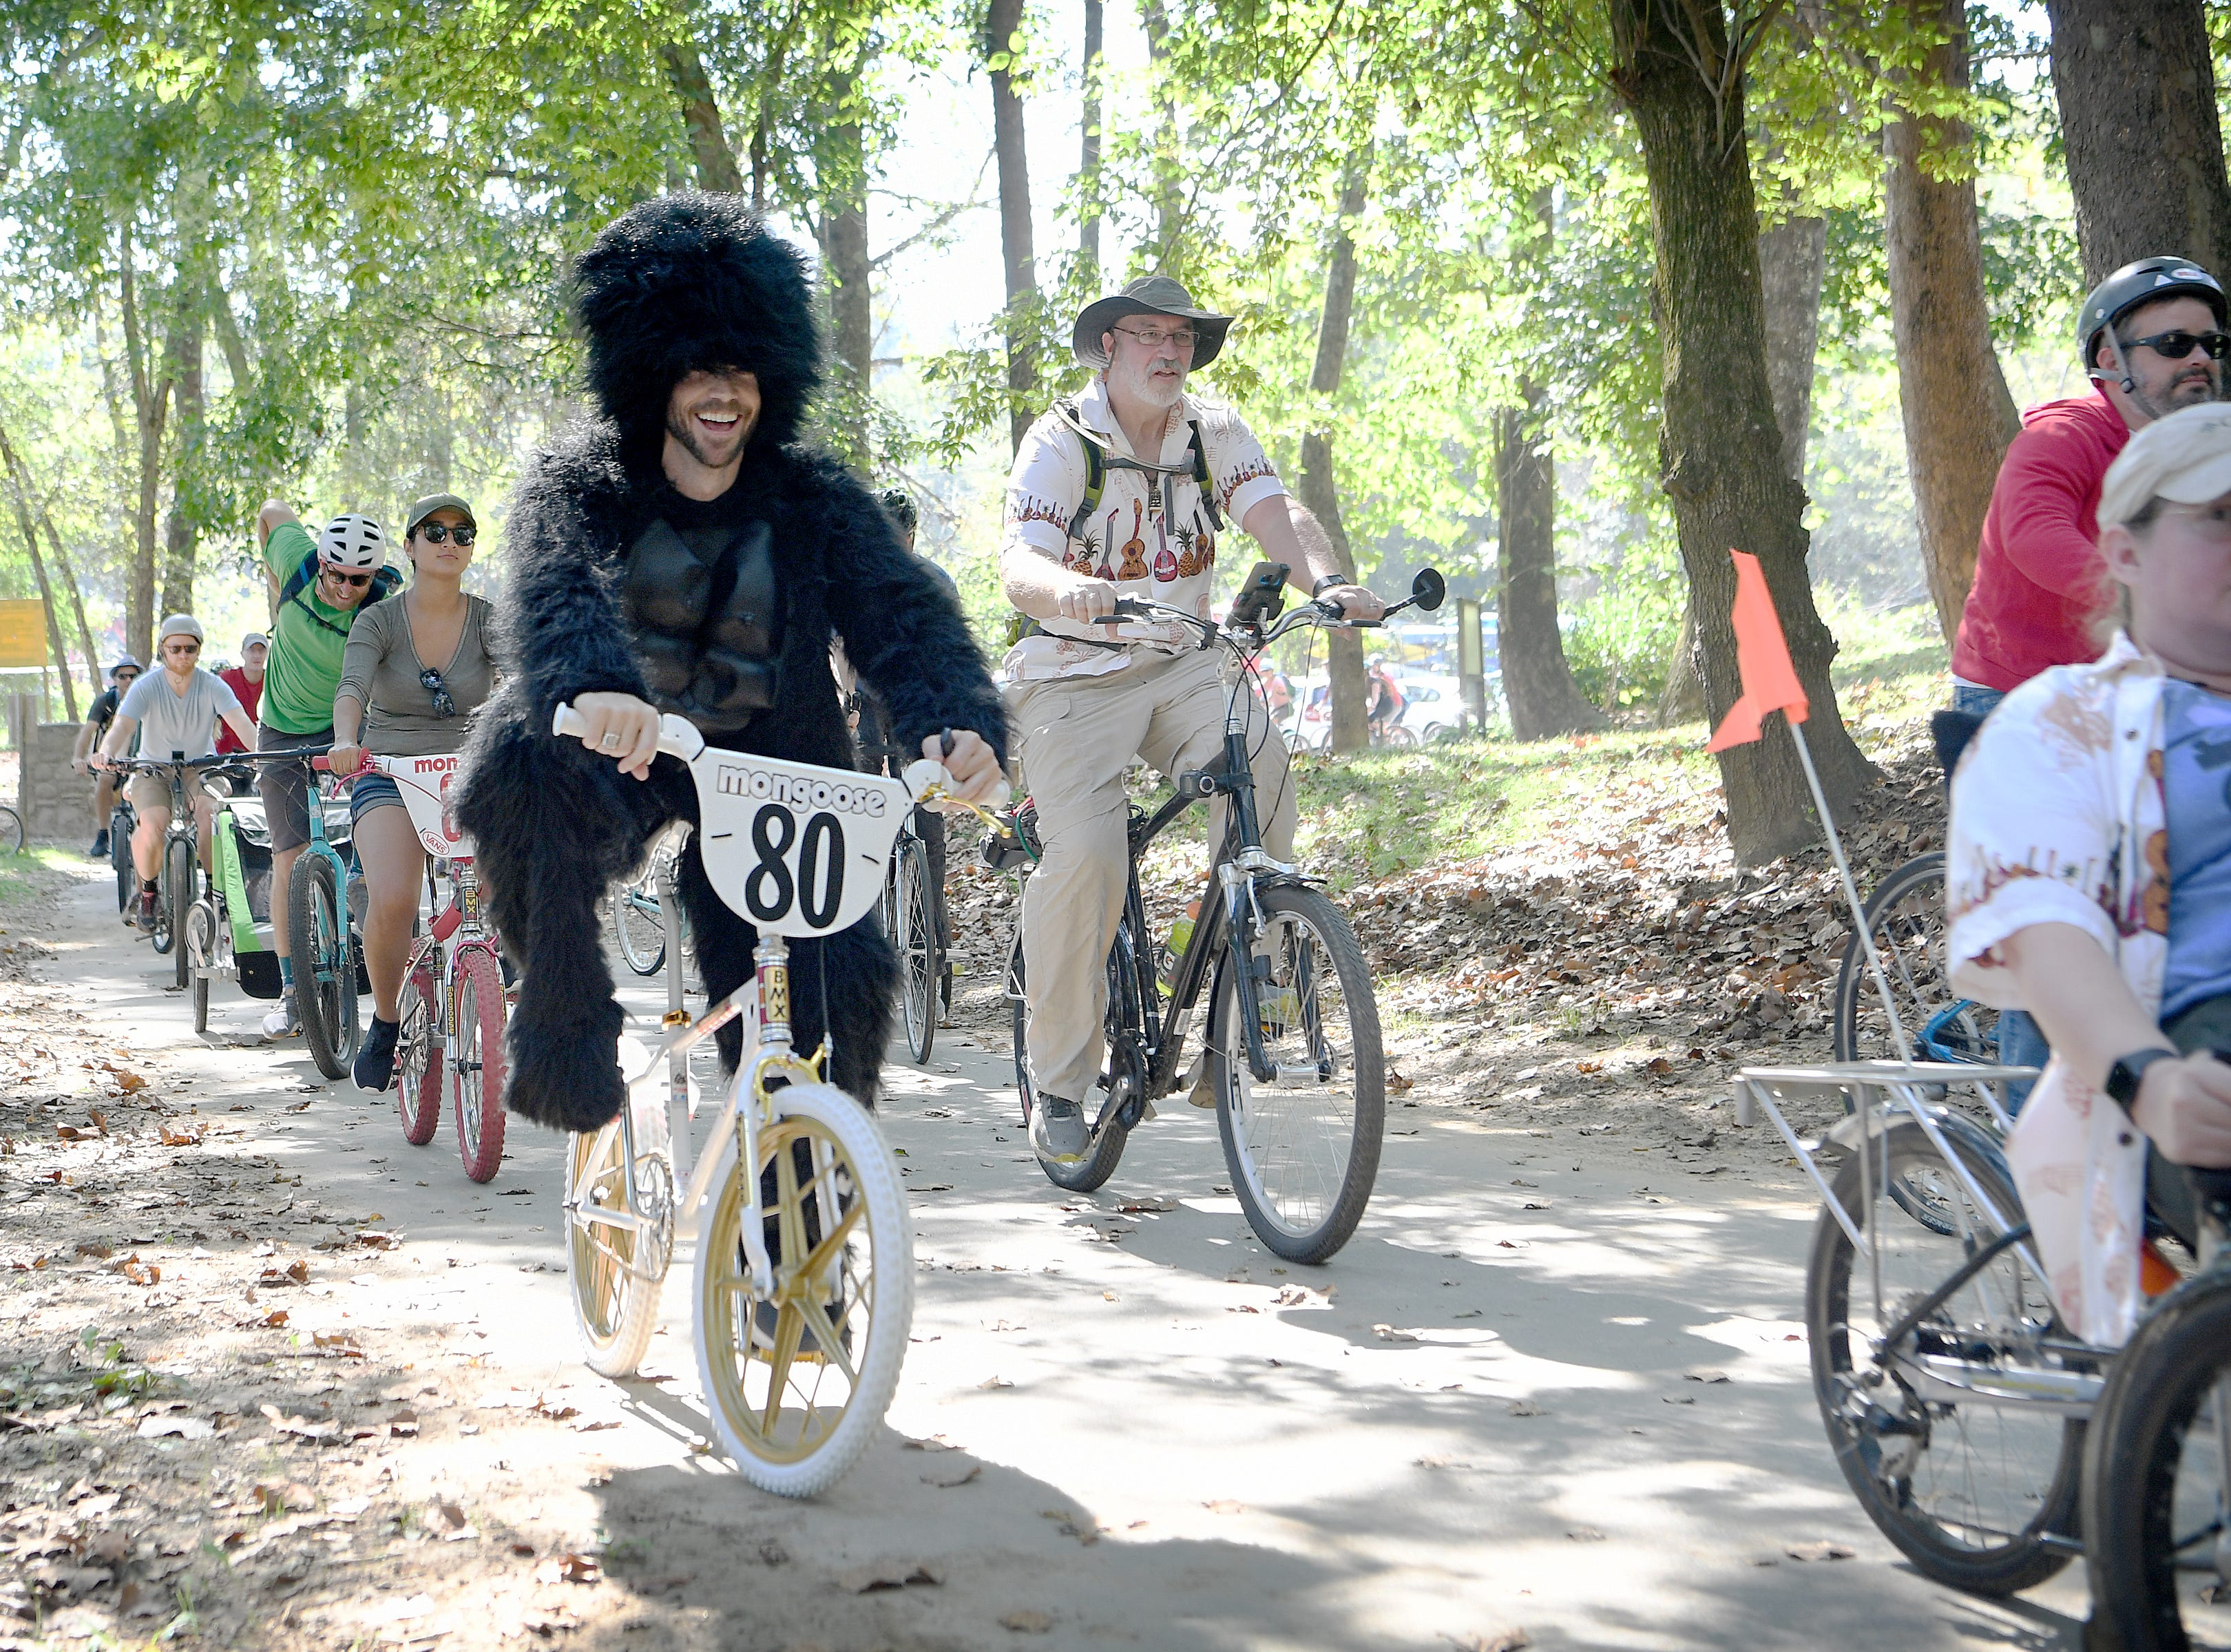 Danny Van Acker dons a gorilla suit as he rides in the Asheville on Bikes and New Belgium Tour de Fat Bike Parade on Sept. 22, 2018.